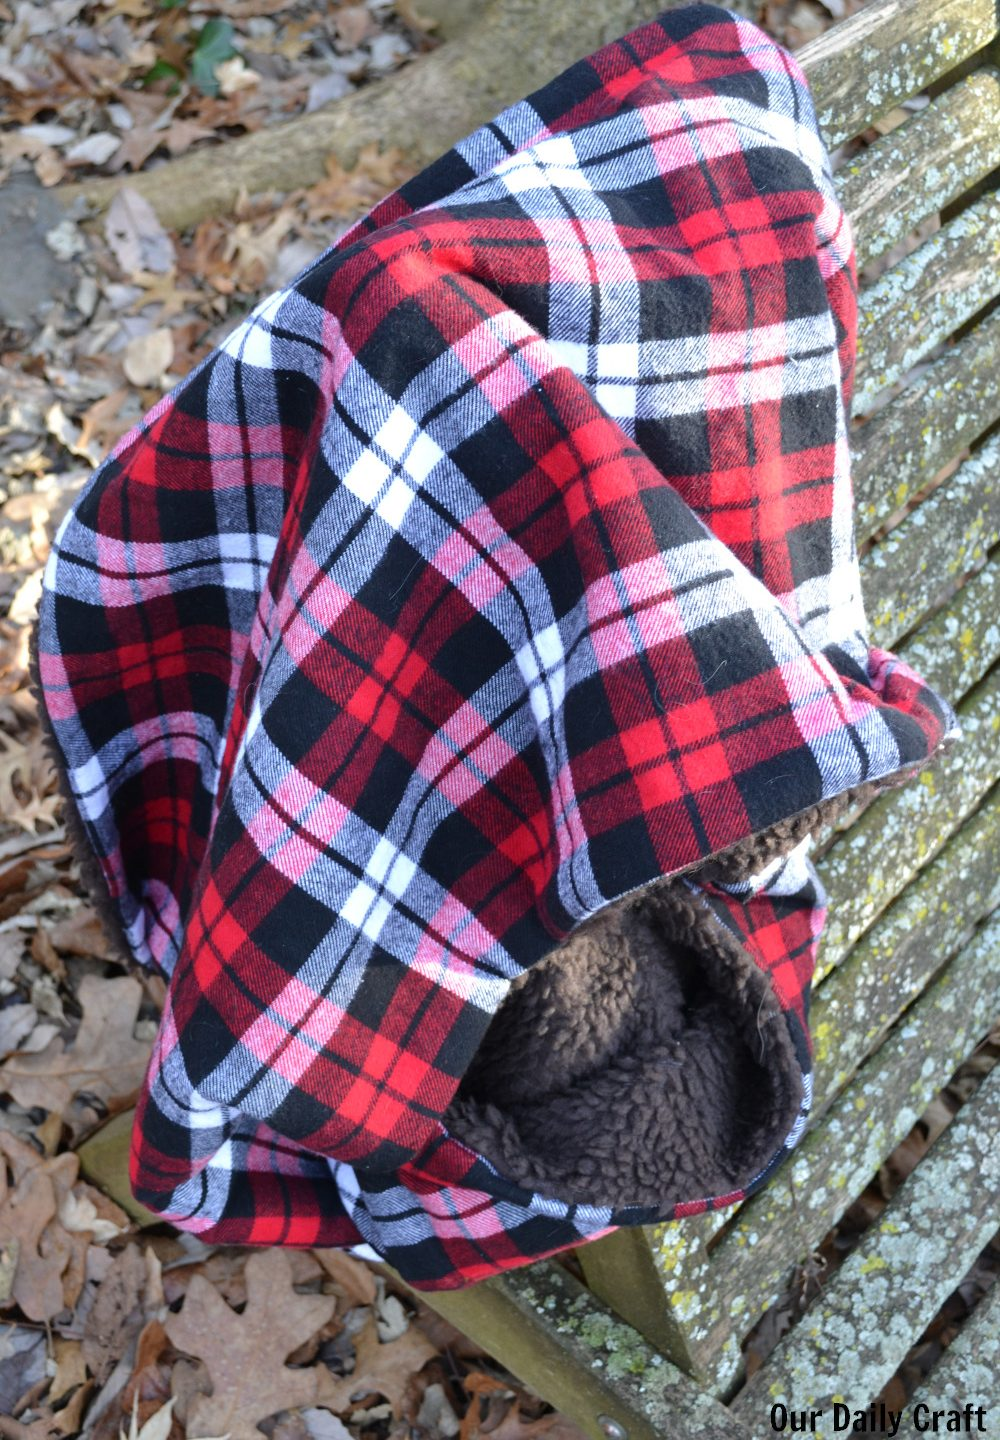 Sew an Infinity Scarf with Sherpa Fabric and Plaid Flannel